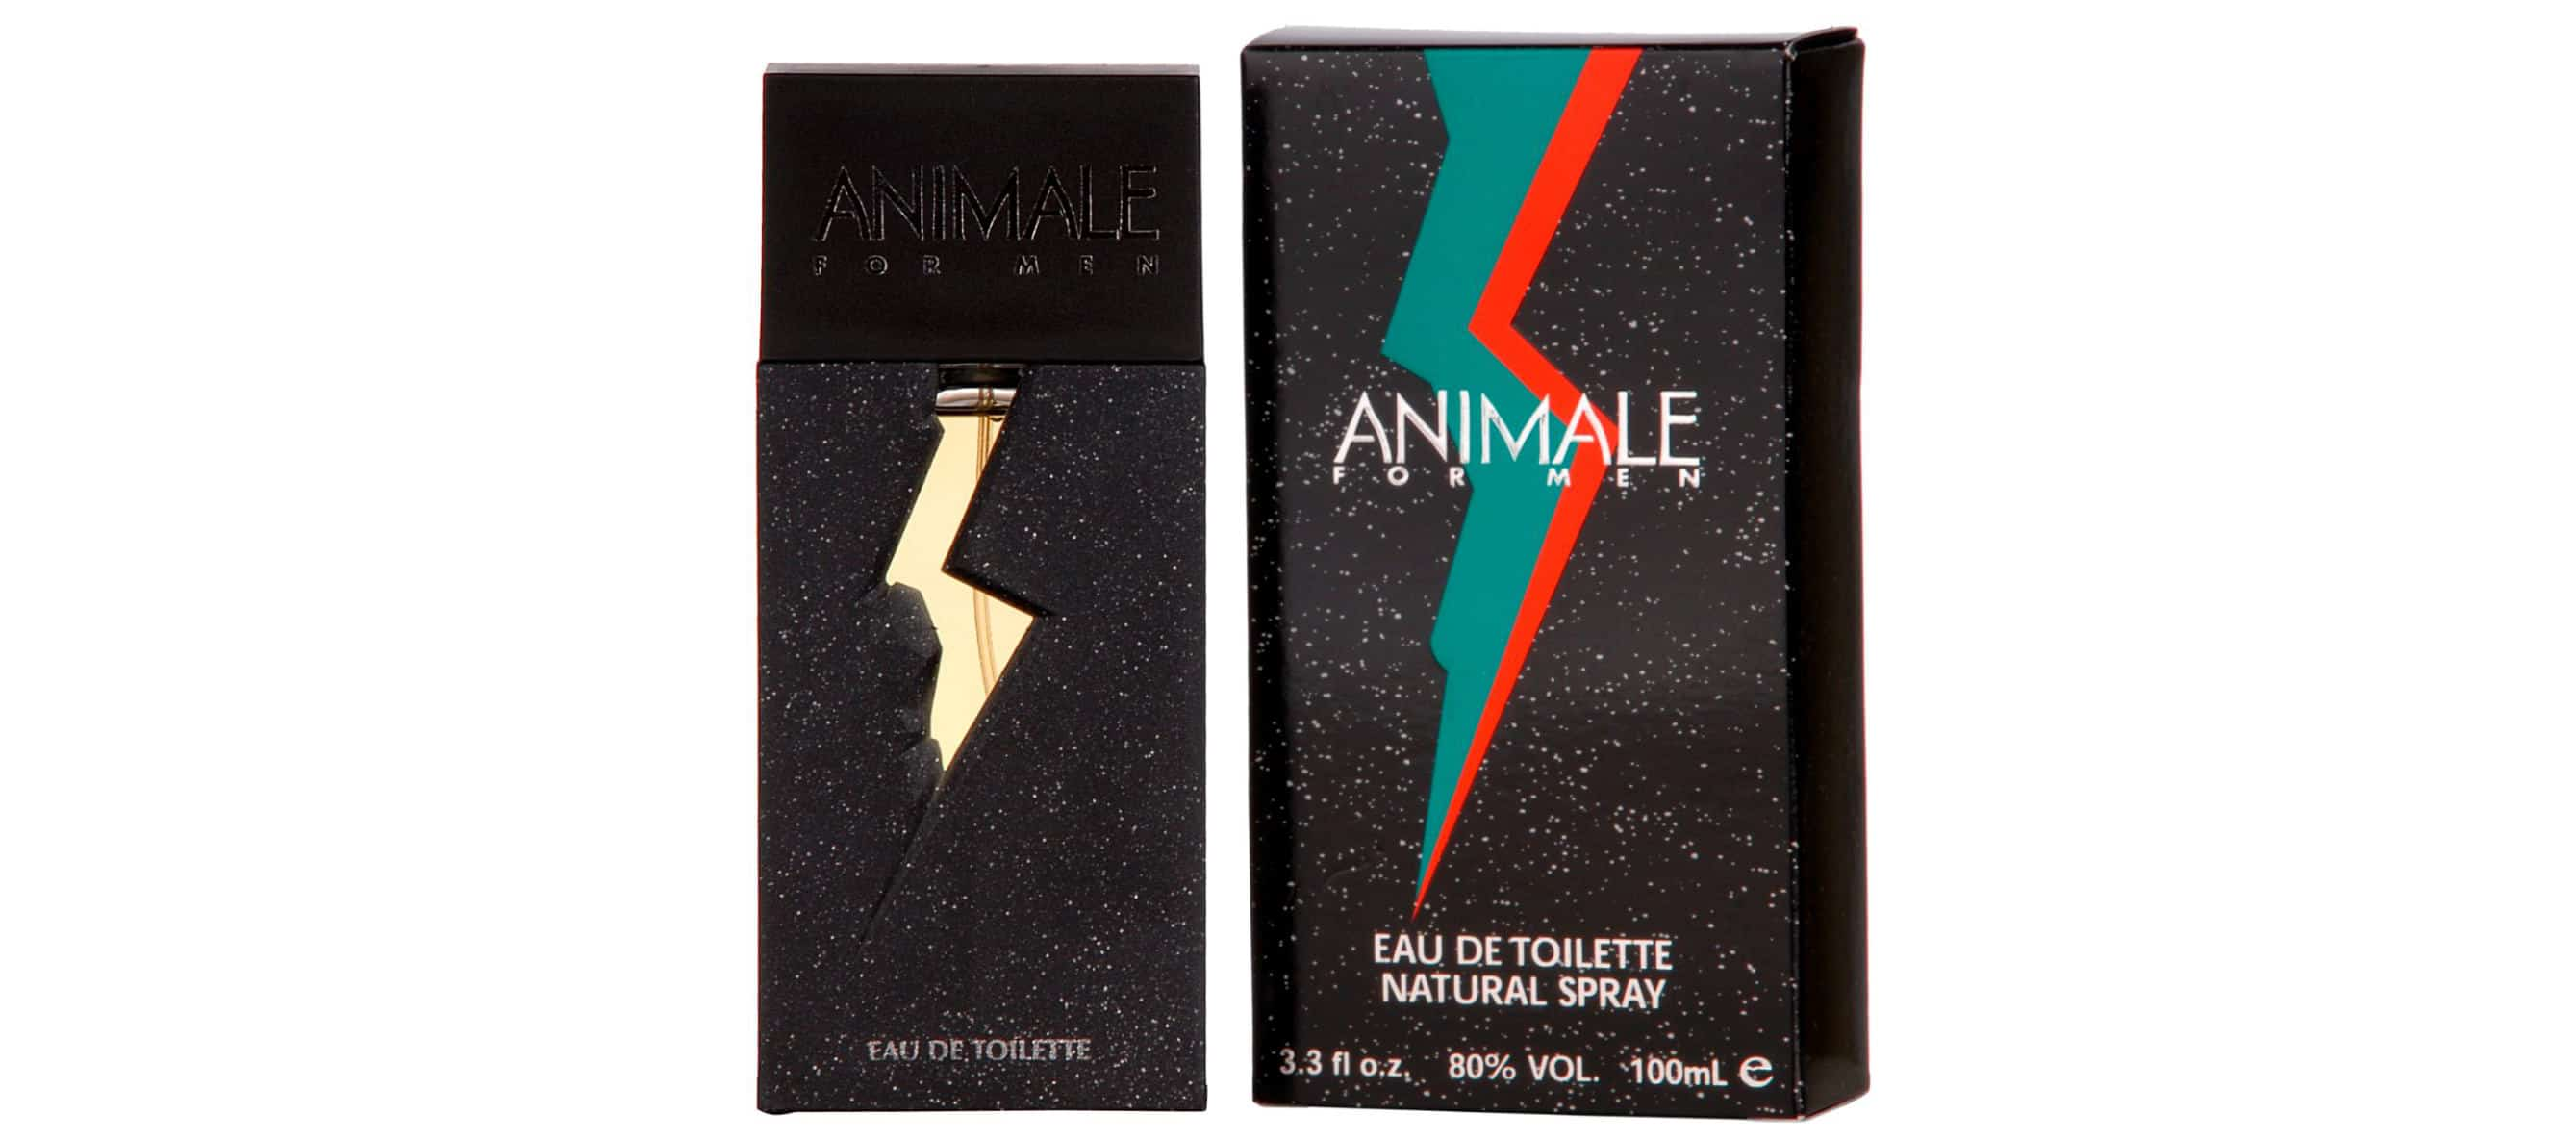 Animale for men homens que se cuidam